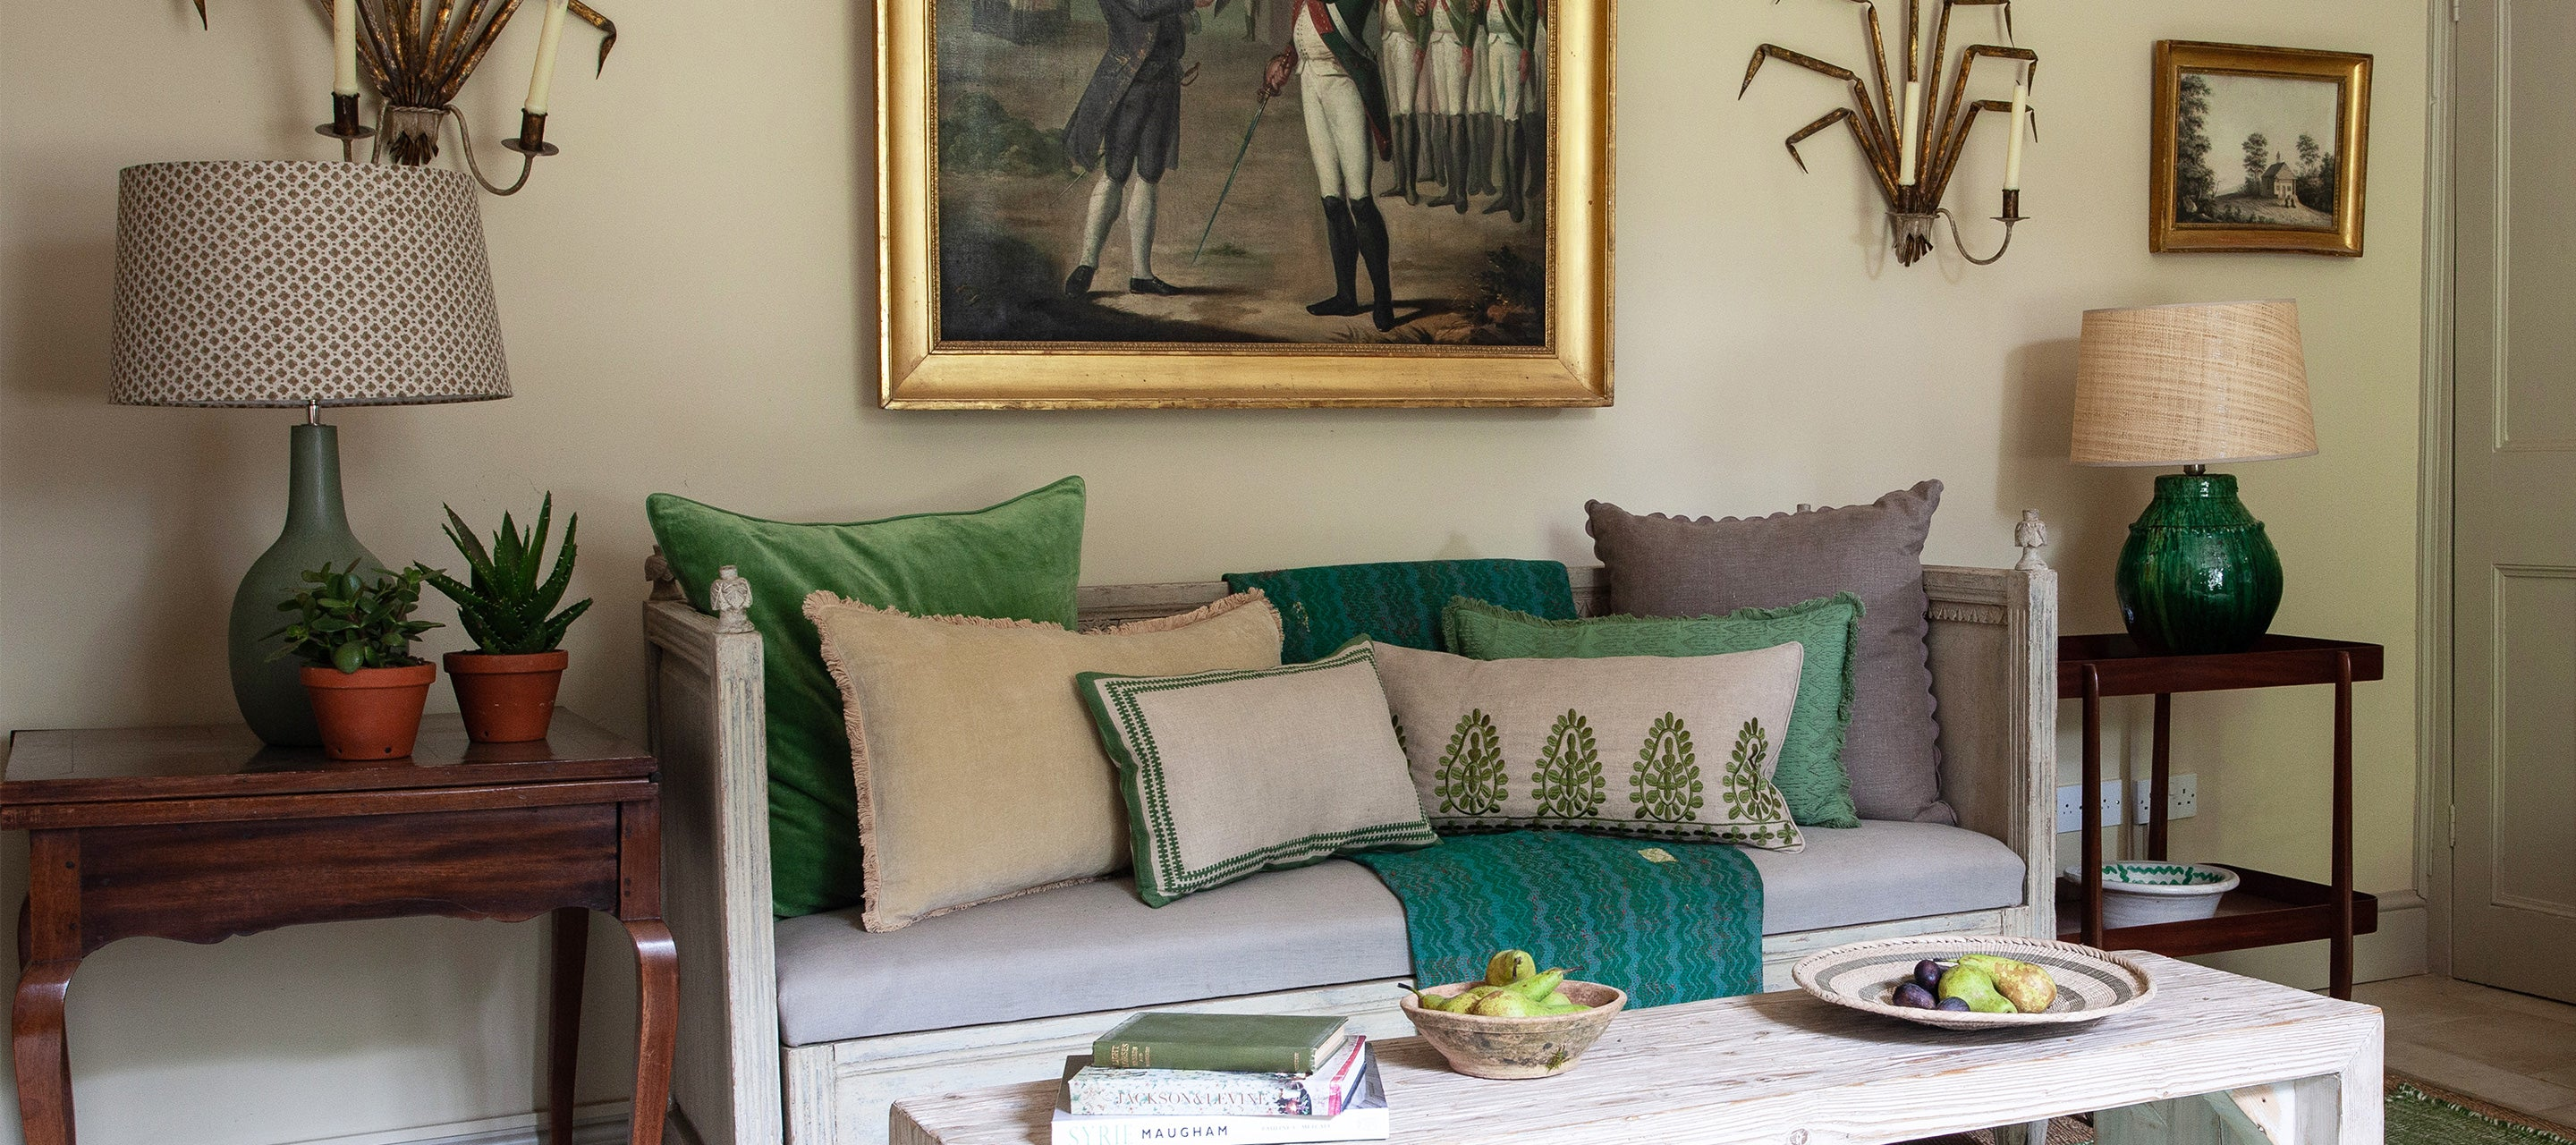 Birdie Fortescue Blog | Tips for Sourcing Antiques